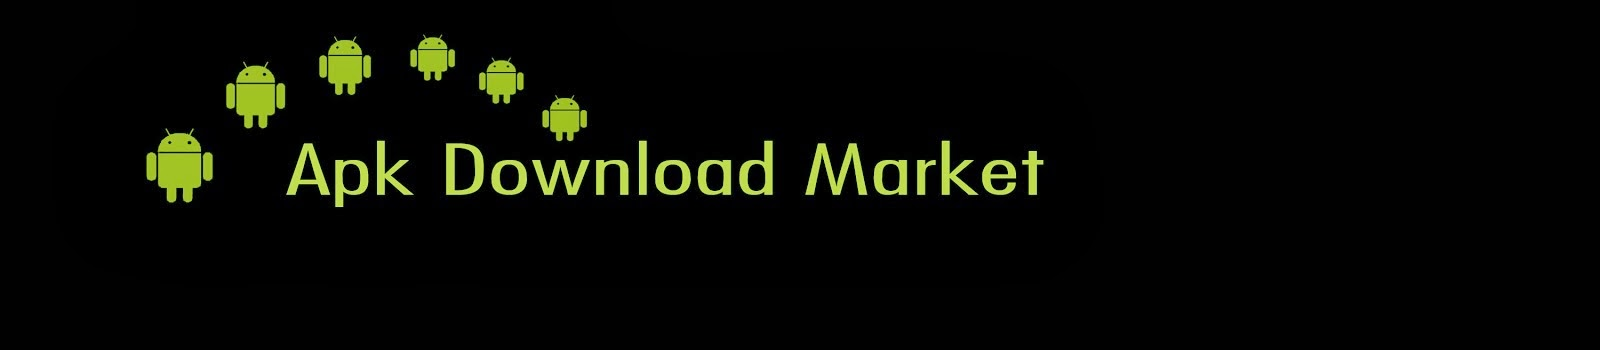 Apk Download Market